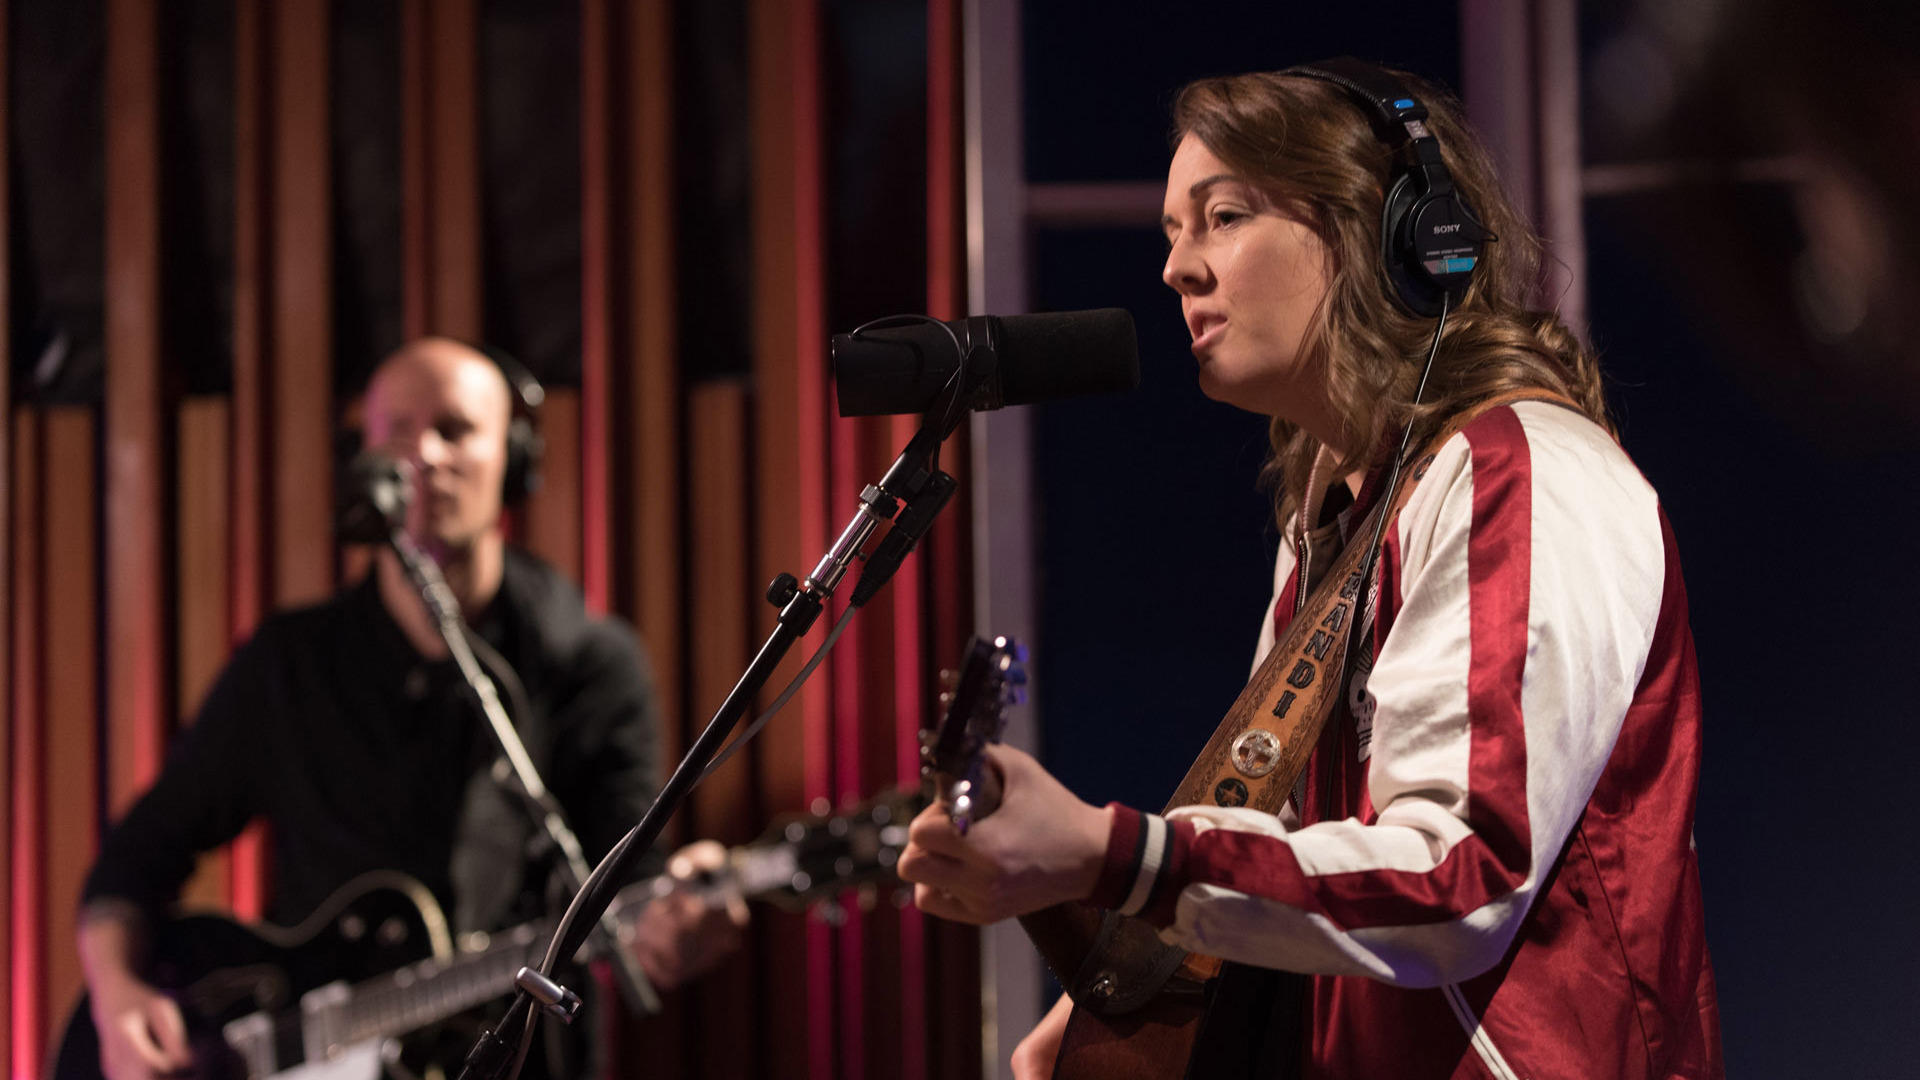 Brandi Carlile, 'Every Time I Hear That Song' (Live) | NPR